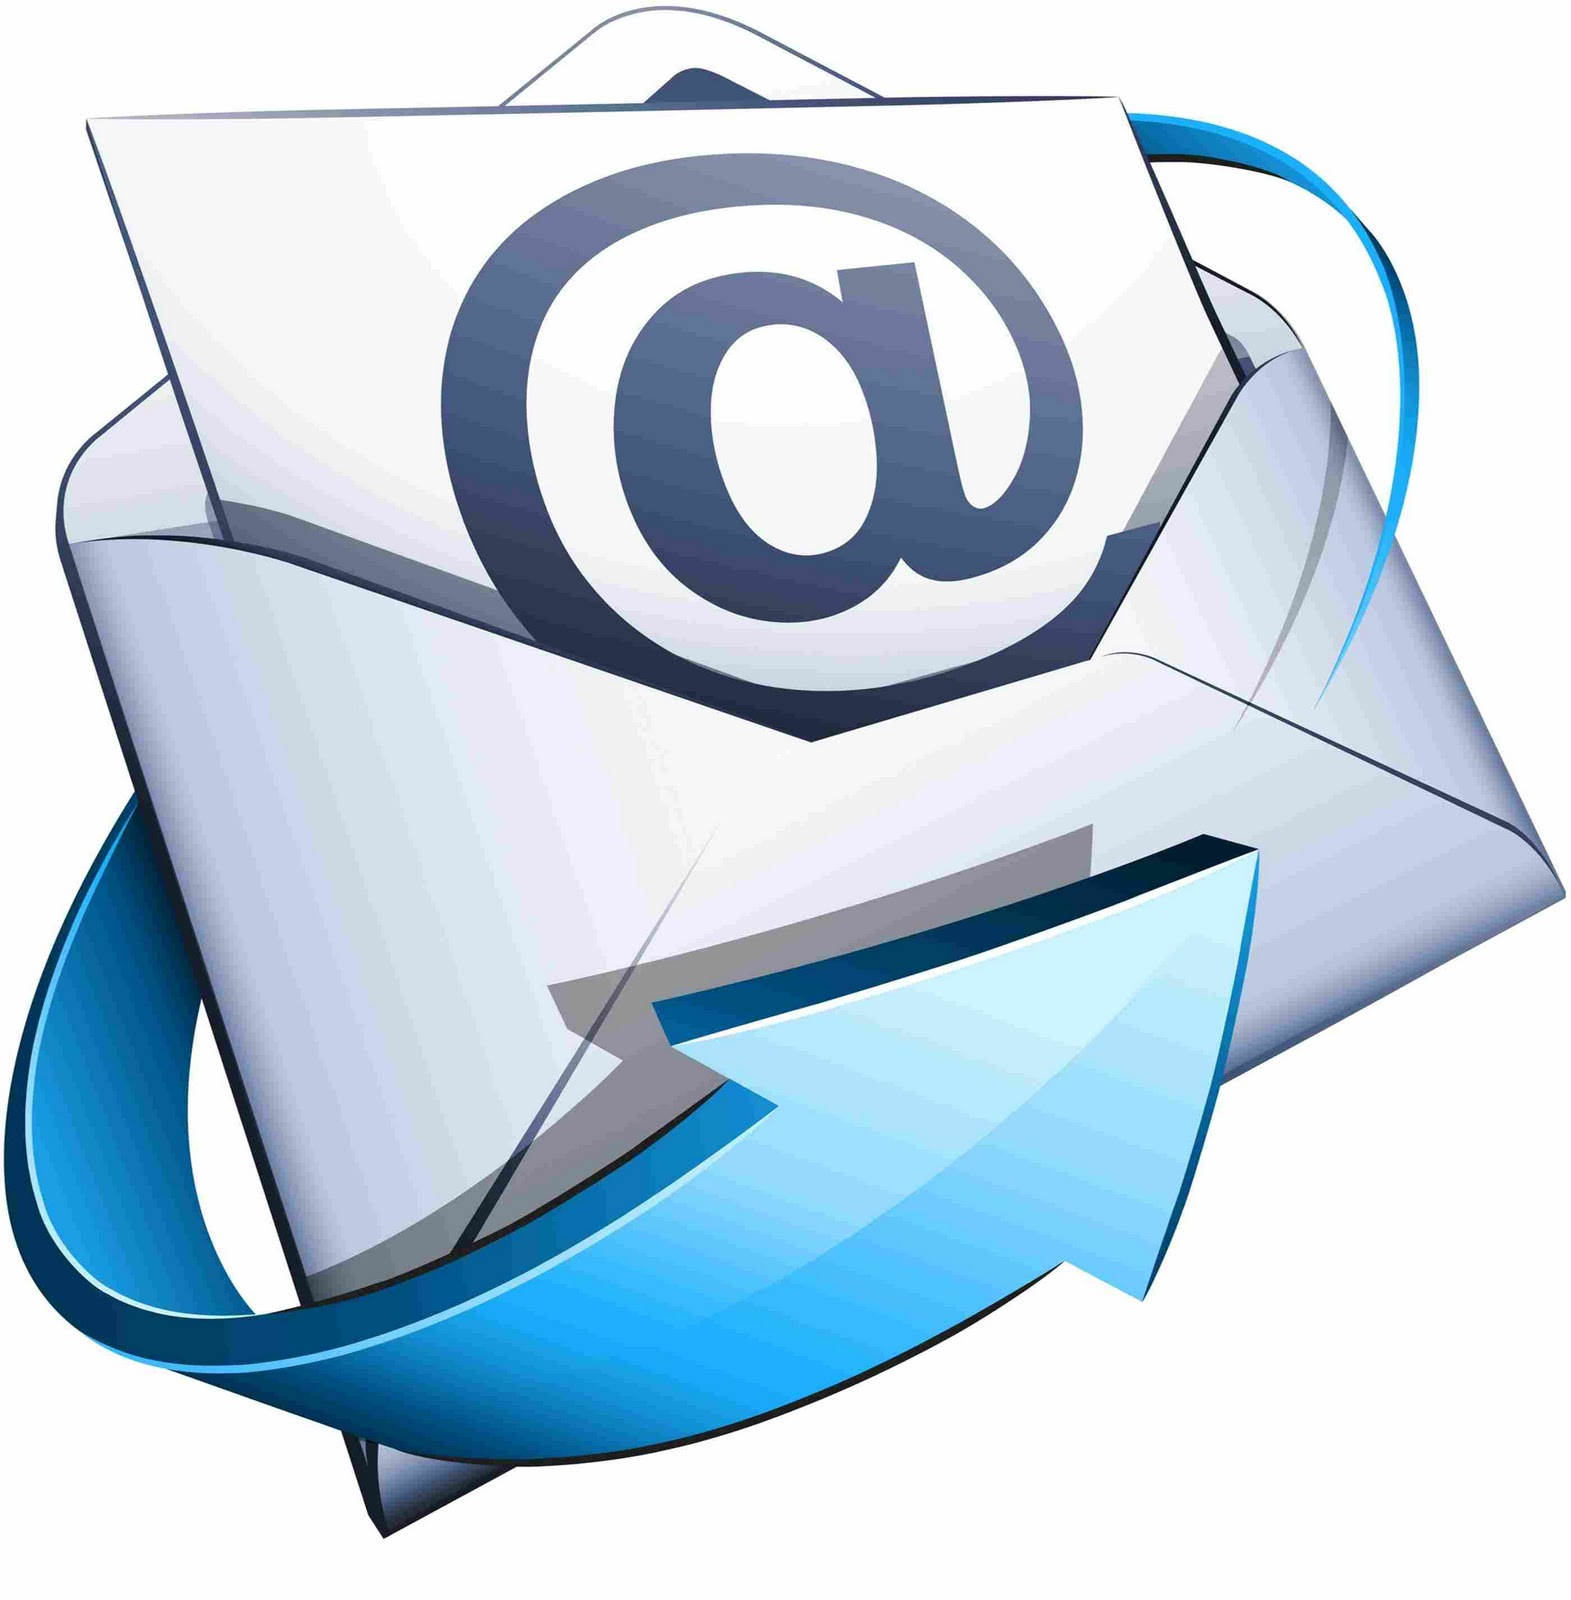 Trace An Email You Got   Finding The Sender Of Email image #129